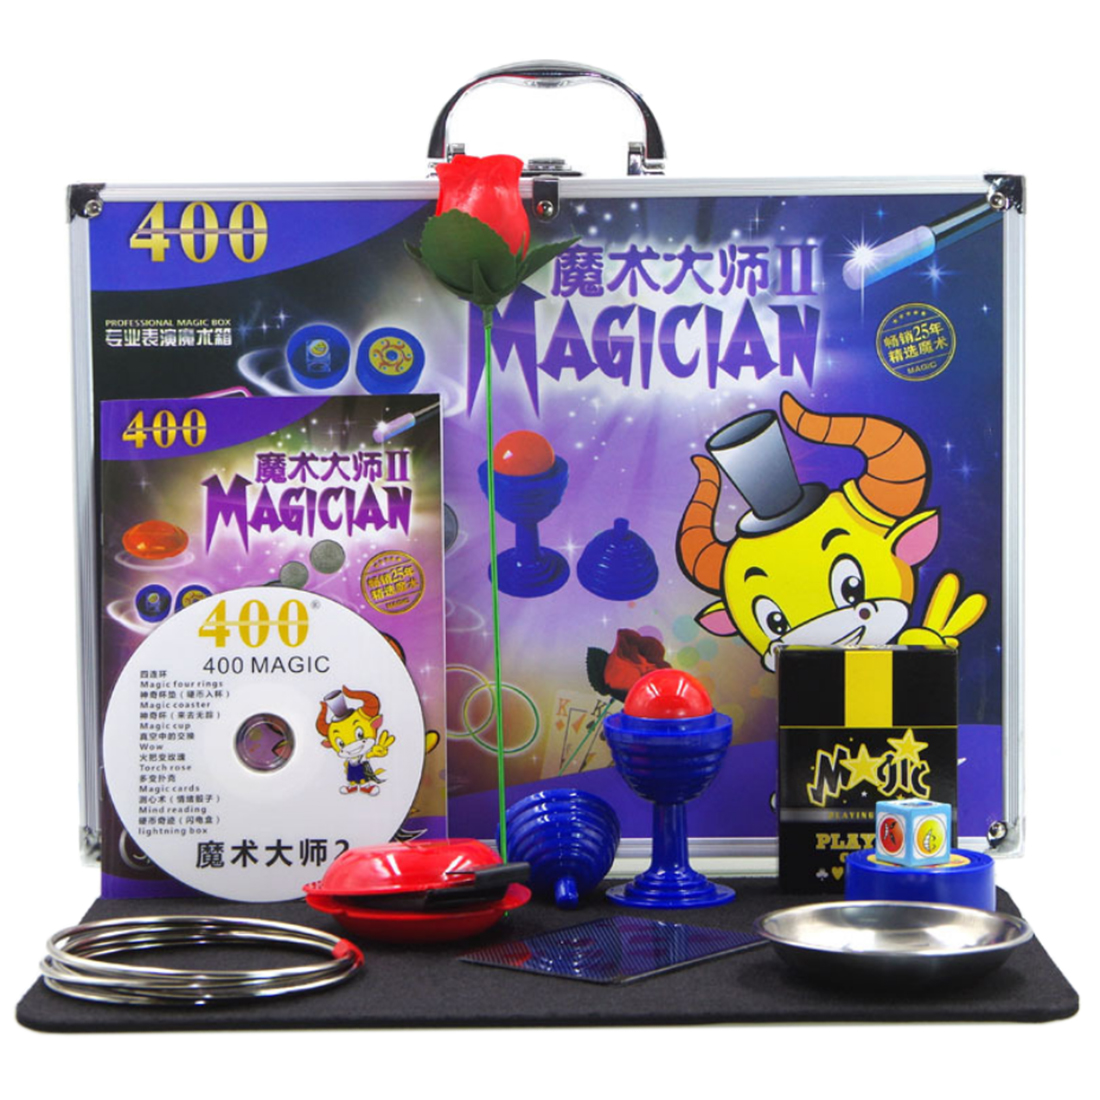 Aluminium Alloy Magic Gift Box Educational Toy Set With Diverse Props